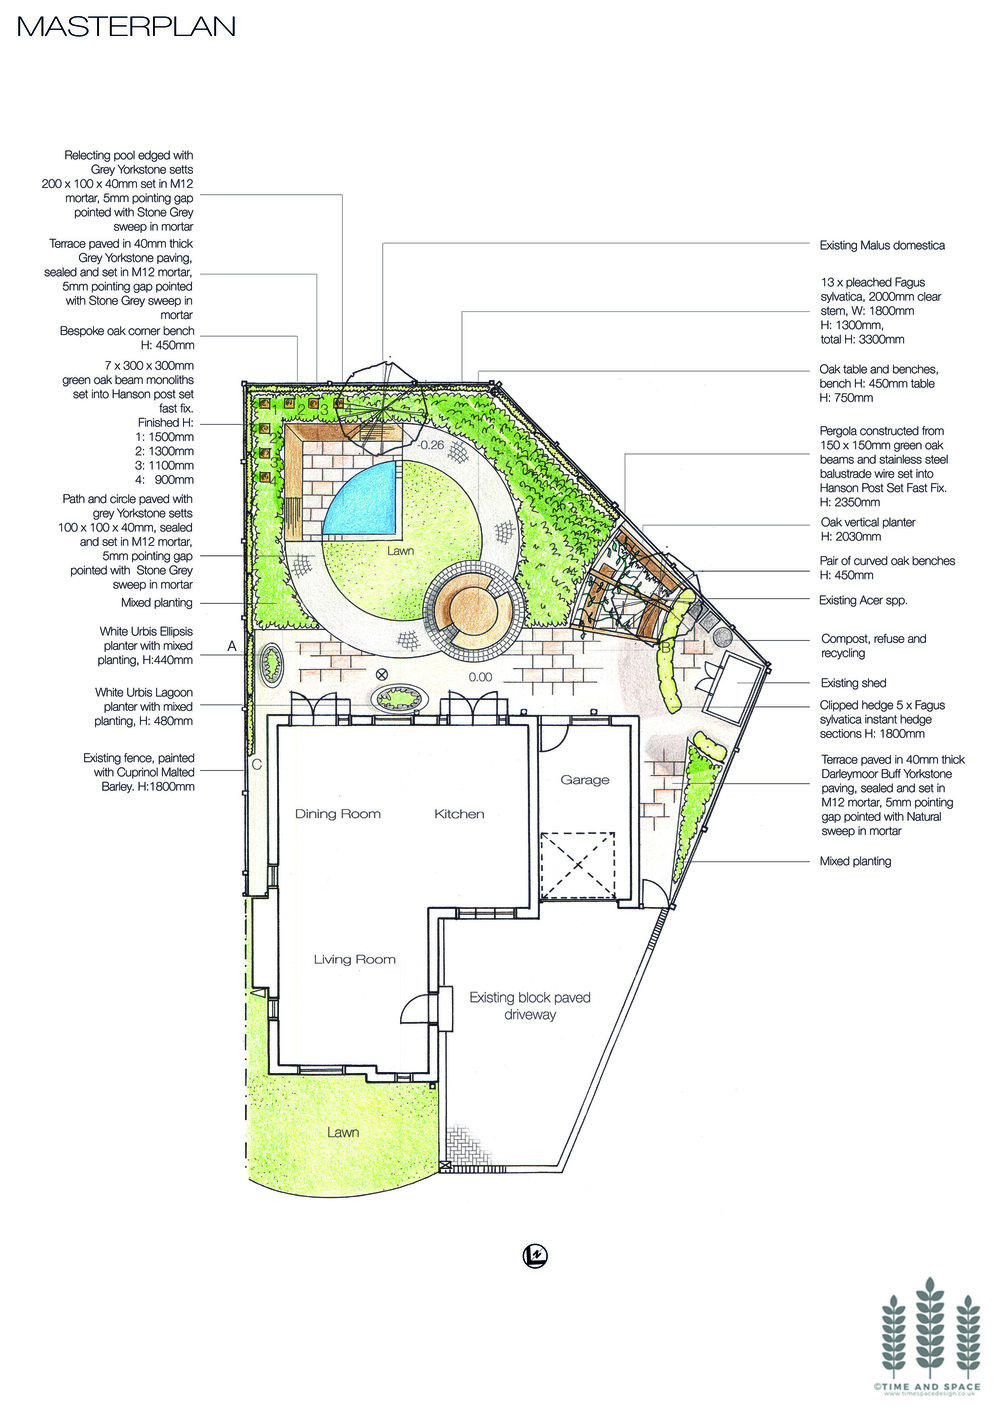 29 Kerver Lane Masterplan colour version.jpg